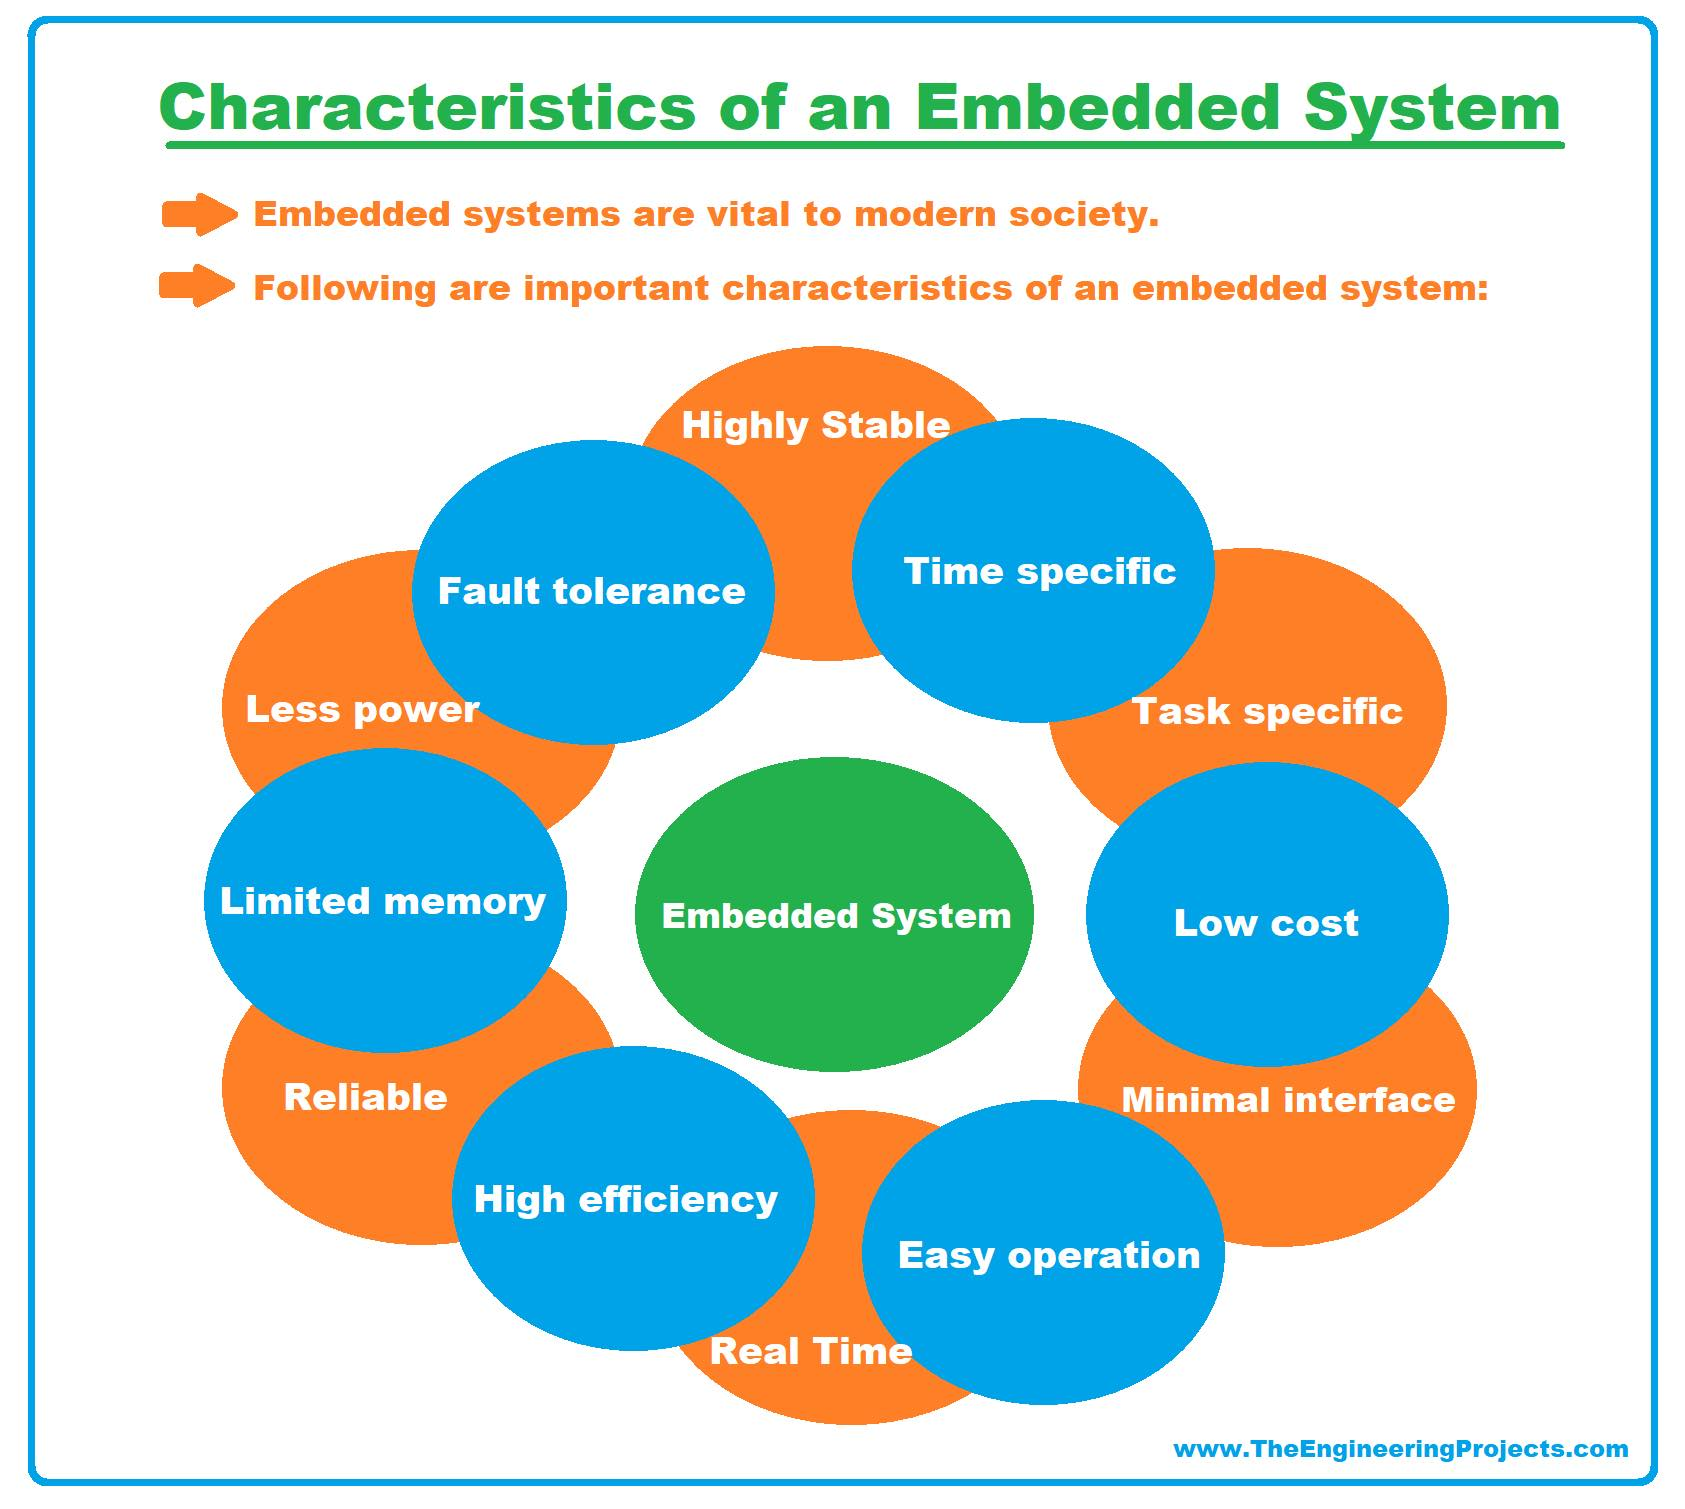 embedded system, embedded systems, what is embedded system, what is an embedded system, basics of embedded system, characteristics of embedded systems, embedded systems characteristics